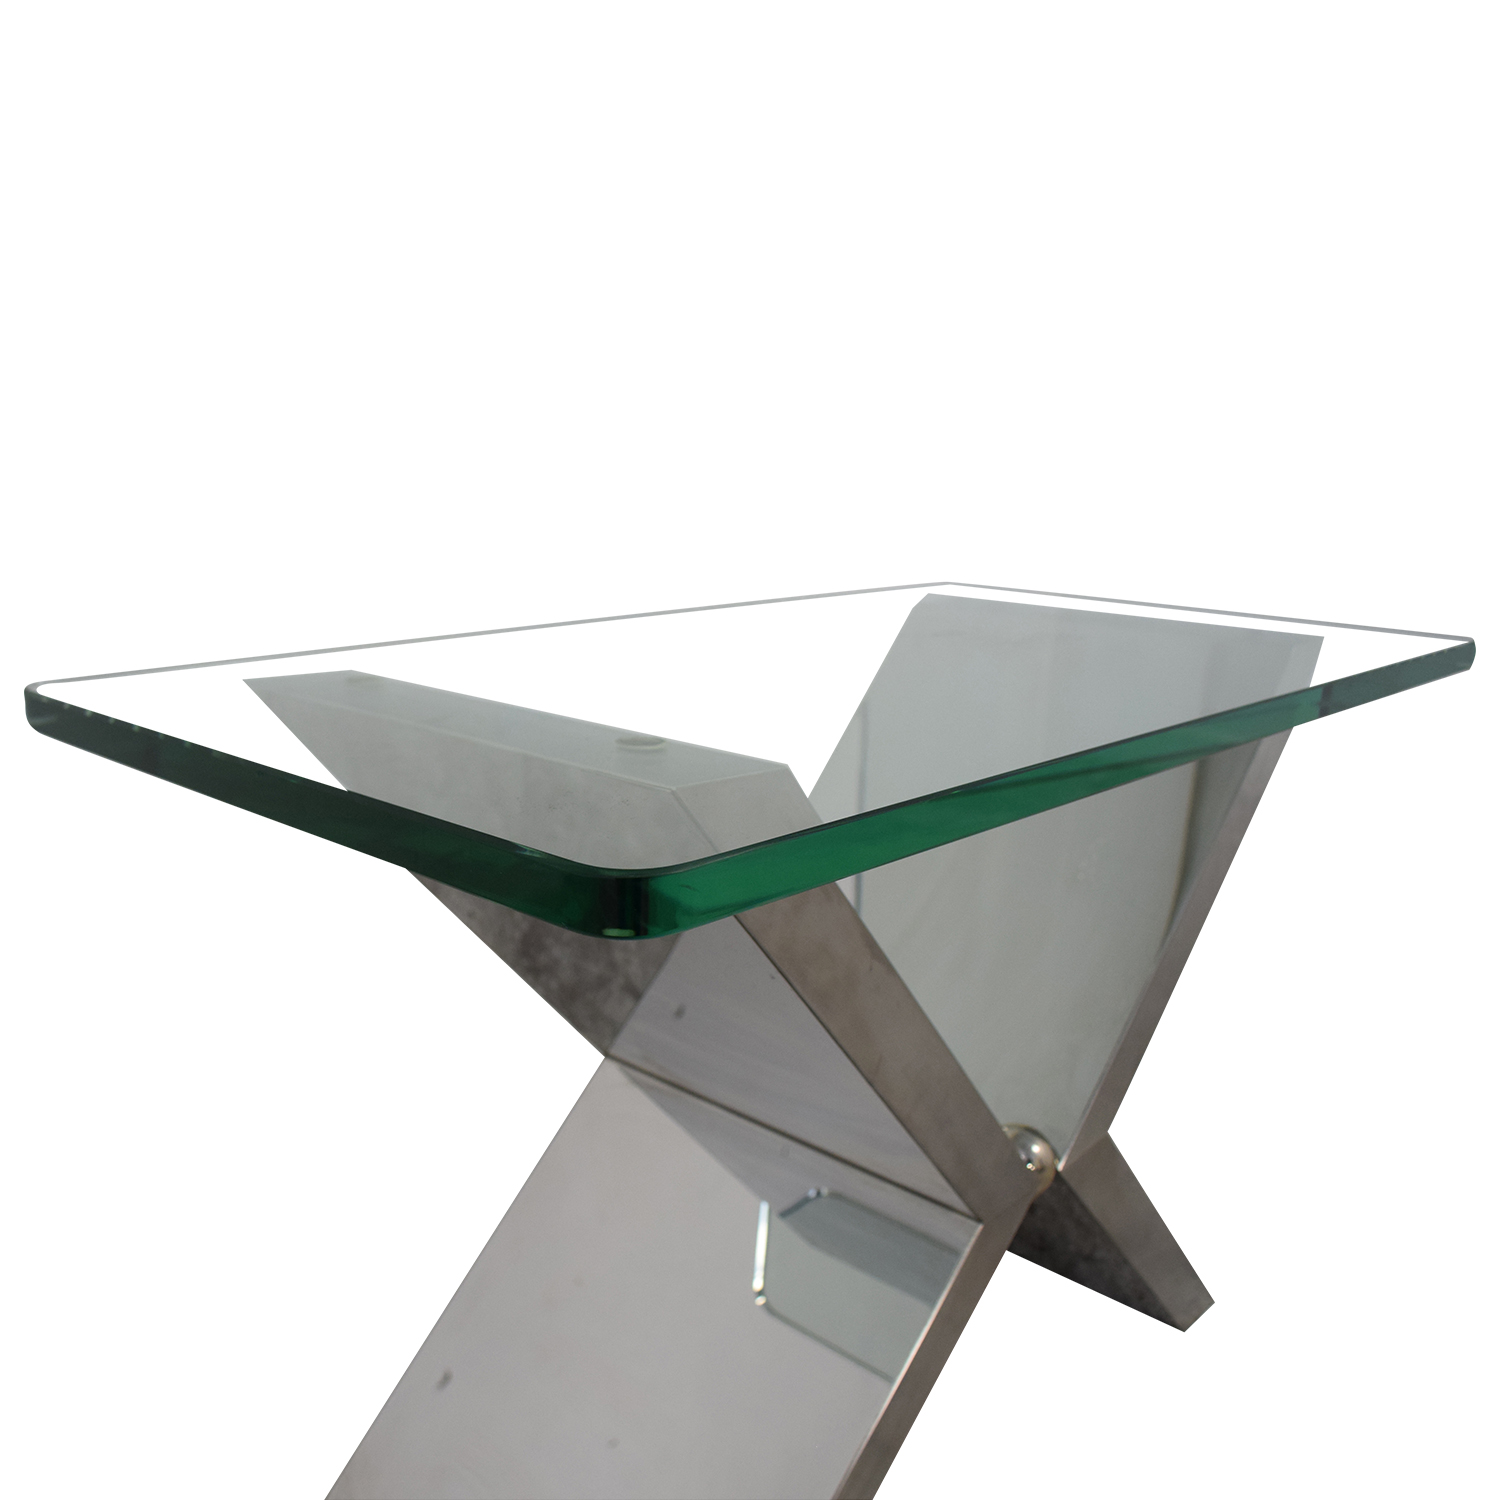 J Robert Scott J Robert Scott Modern Glass and Steel Side Table discount